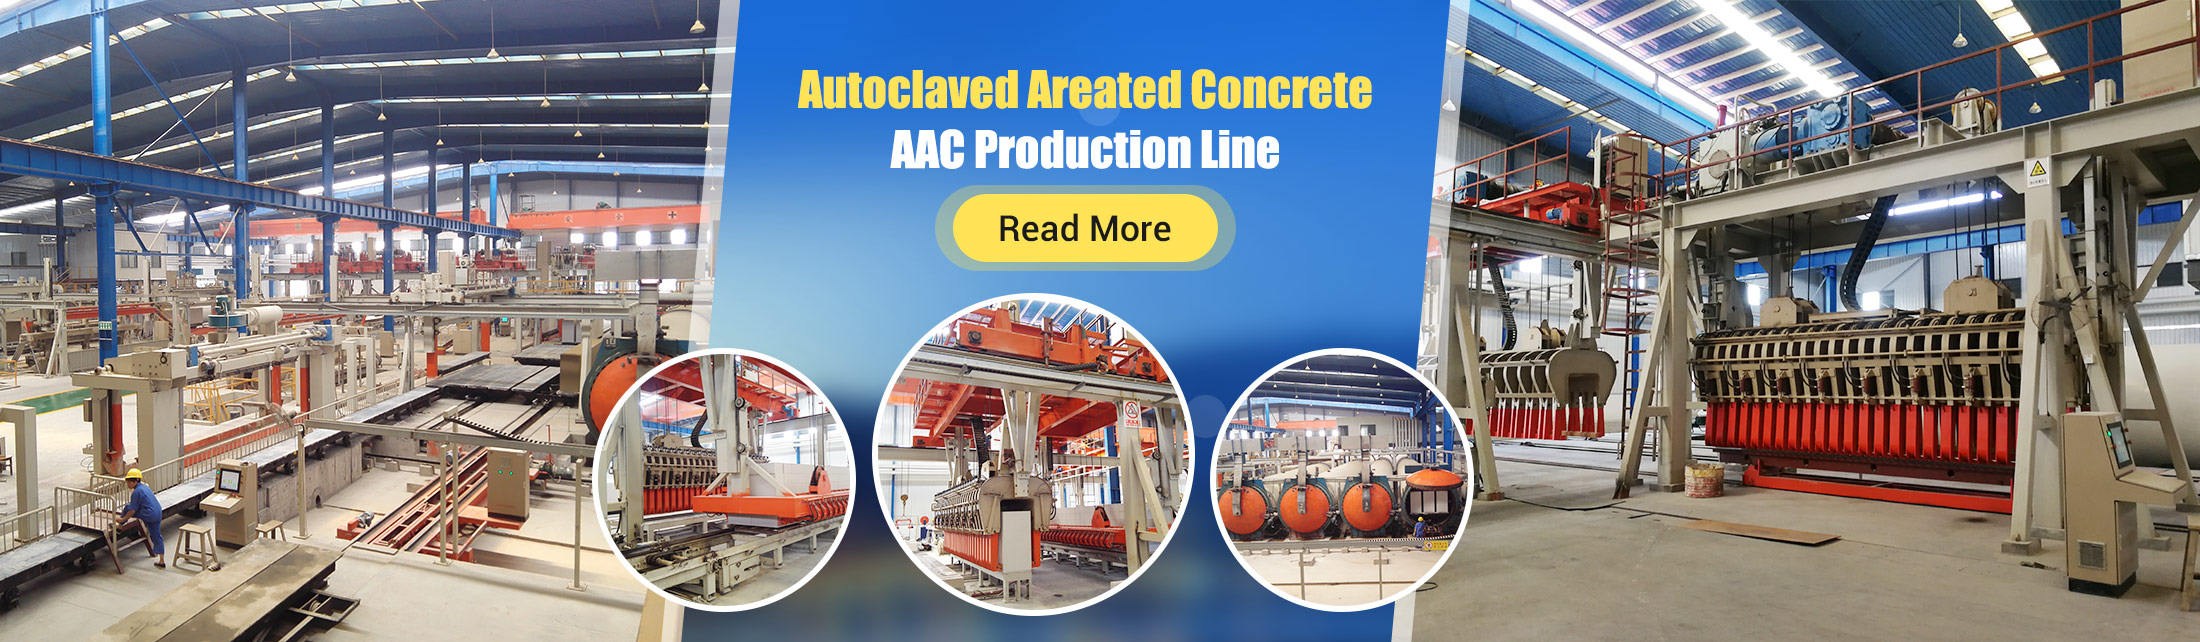 Autoclaved Areated Concrete AAC Production Line Machinery